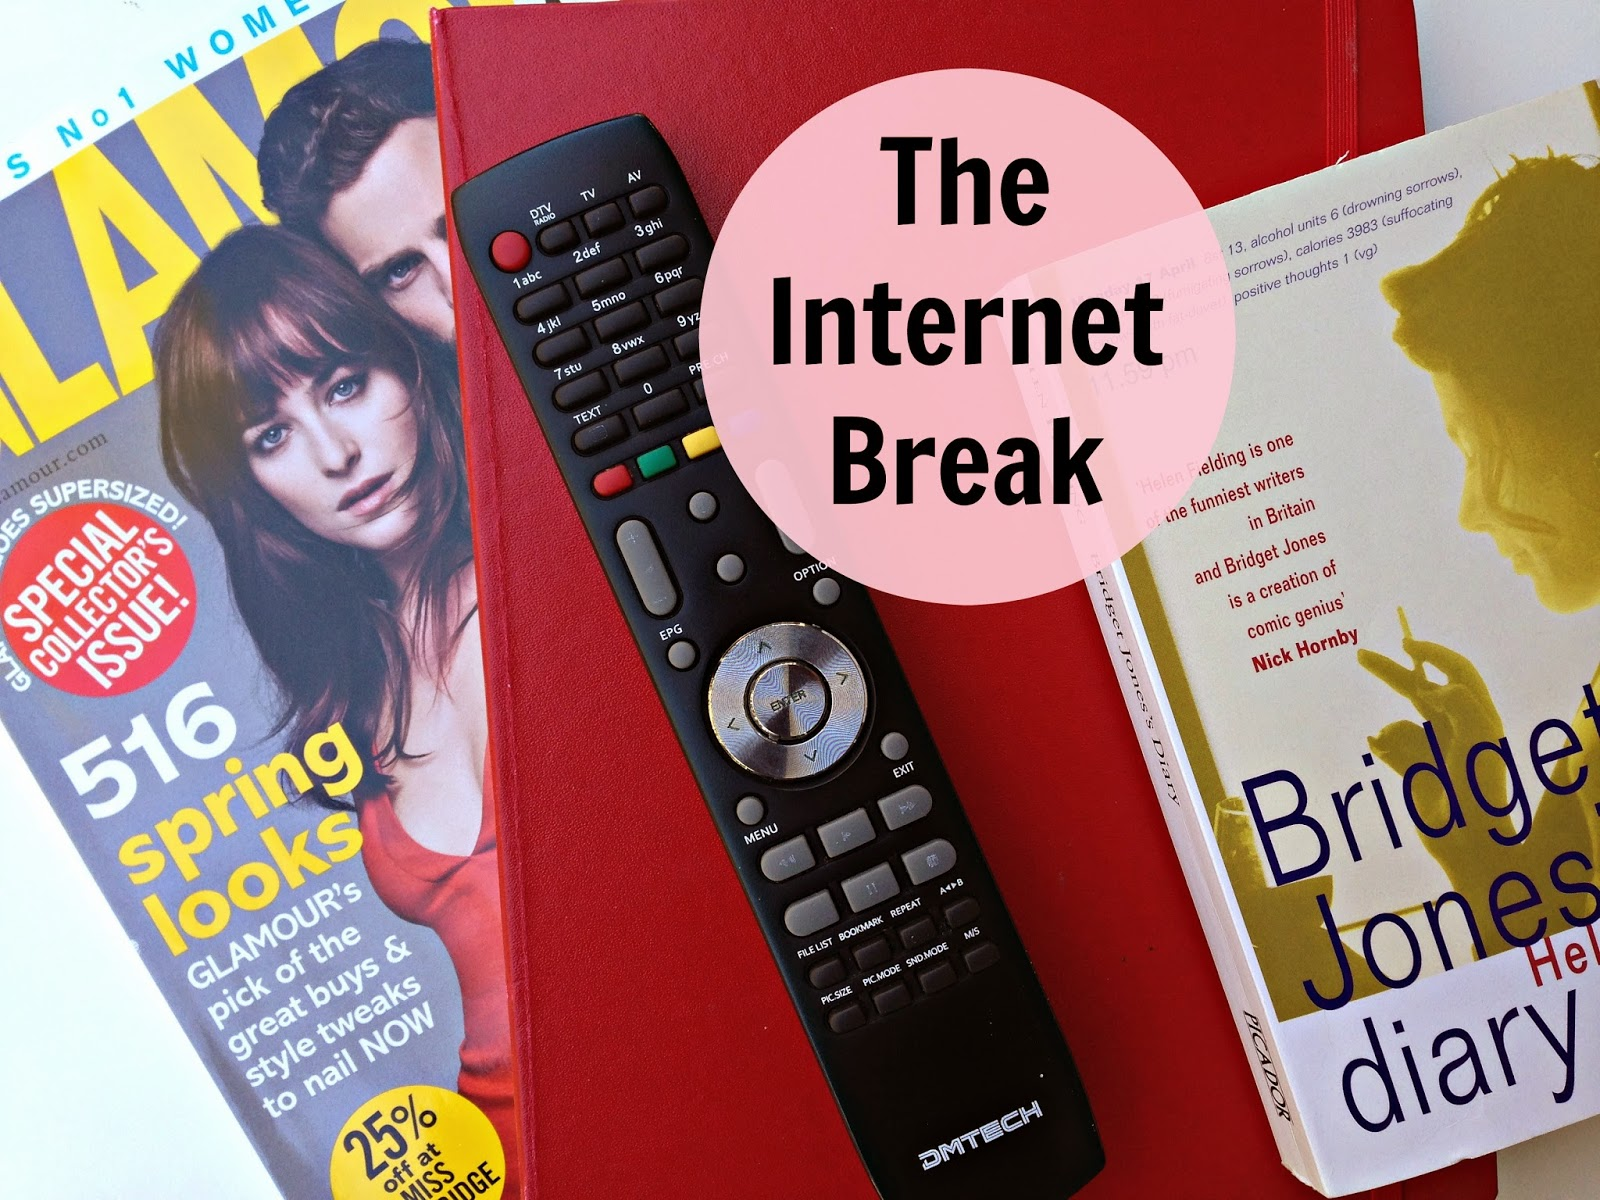 The Internet Break